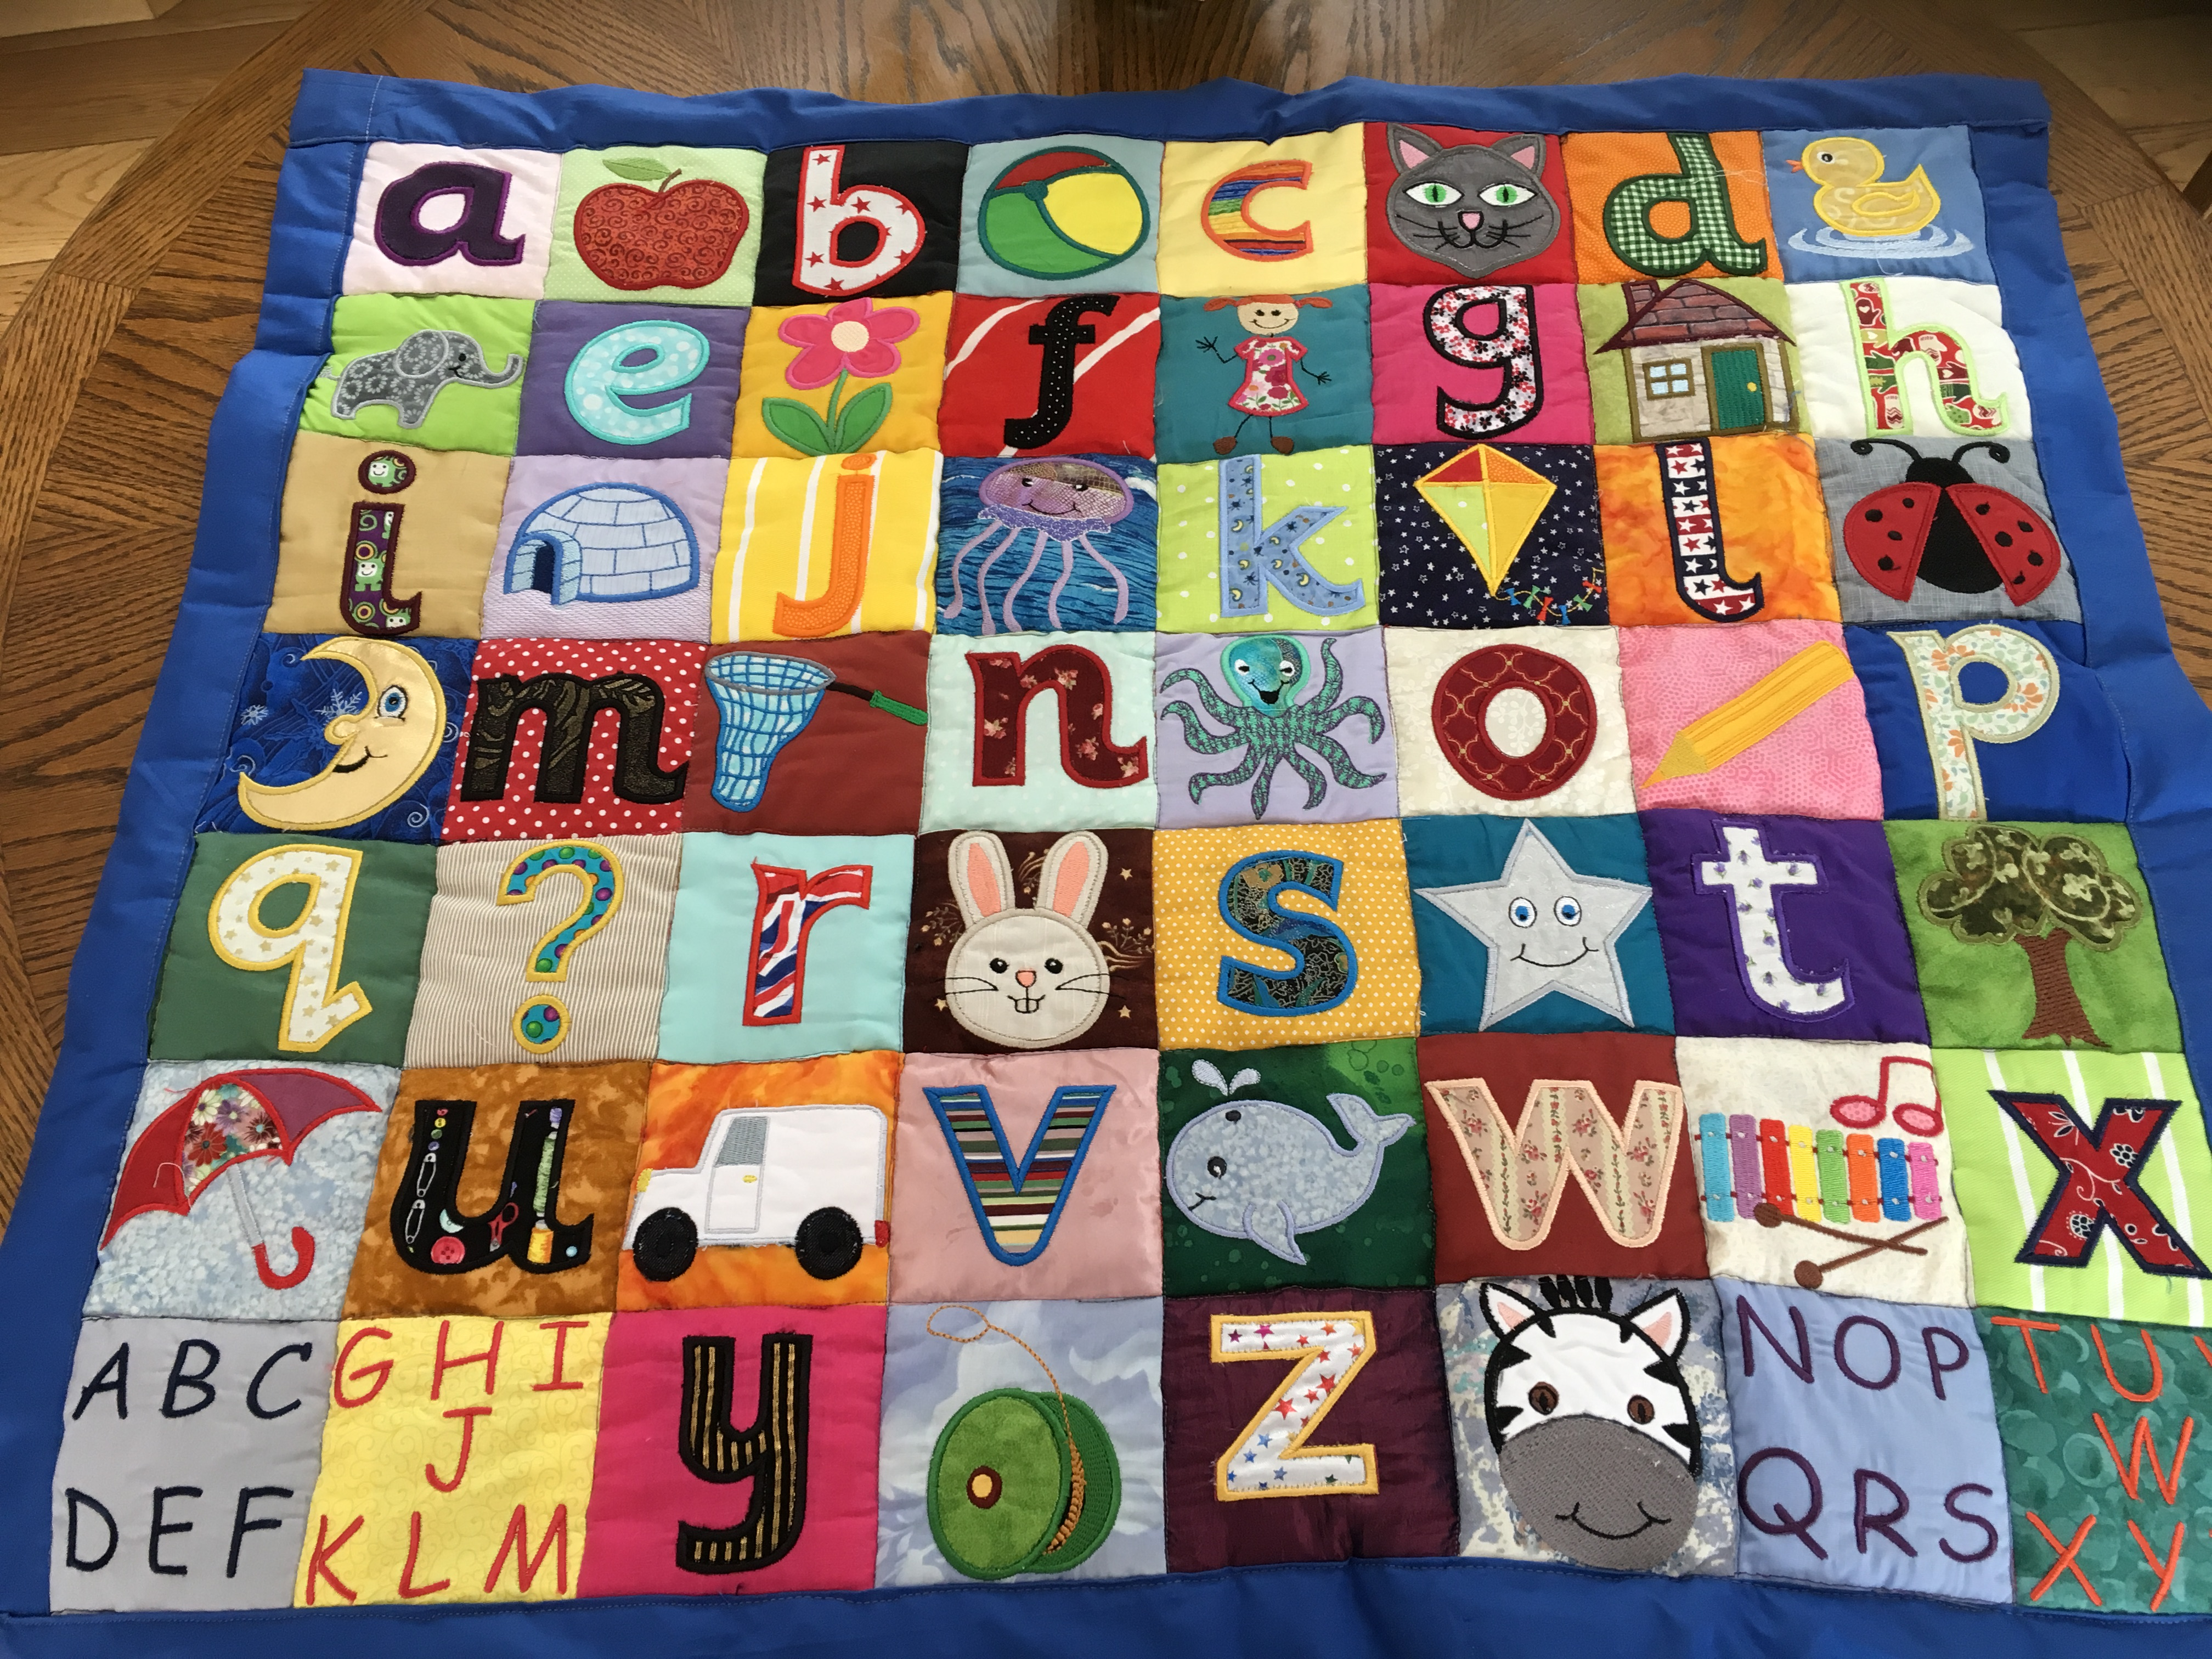 Free embroidery designs cute embroidery designs a wall hanging to teach the alphabet sounds letters and pictures are applique these are my own designs spiritdancerdesigns Images